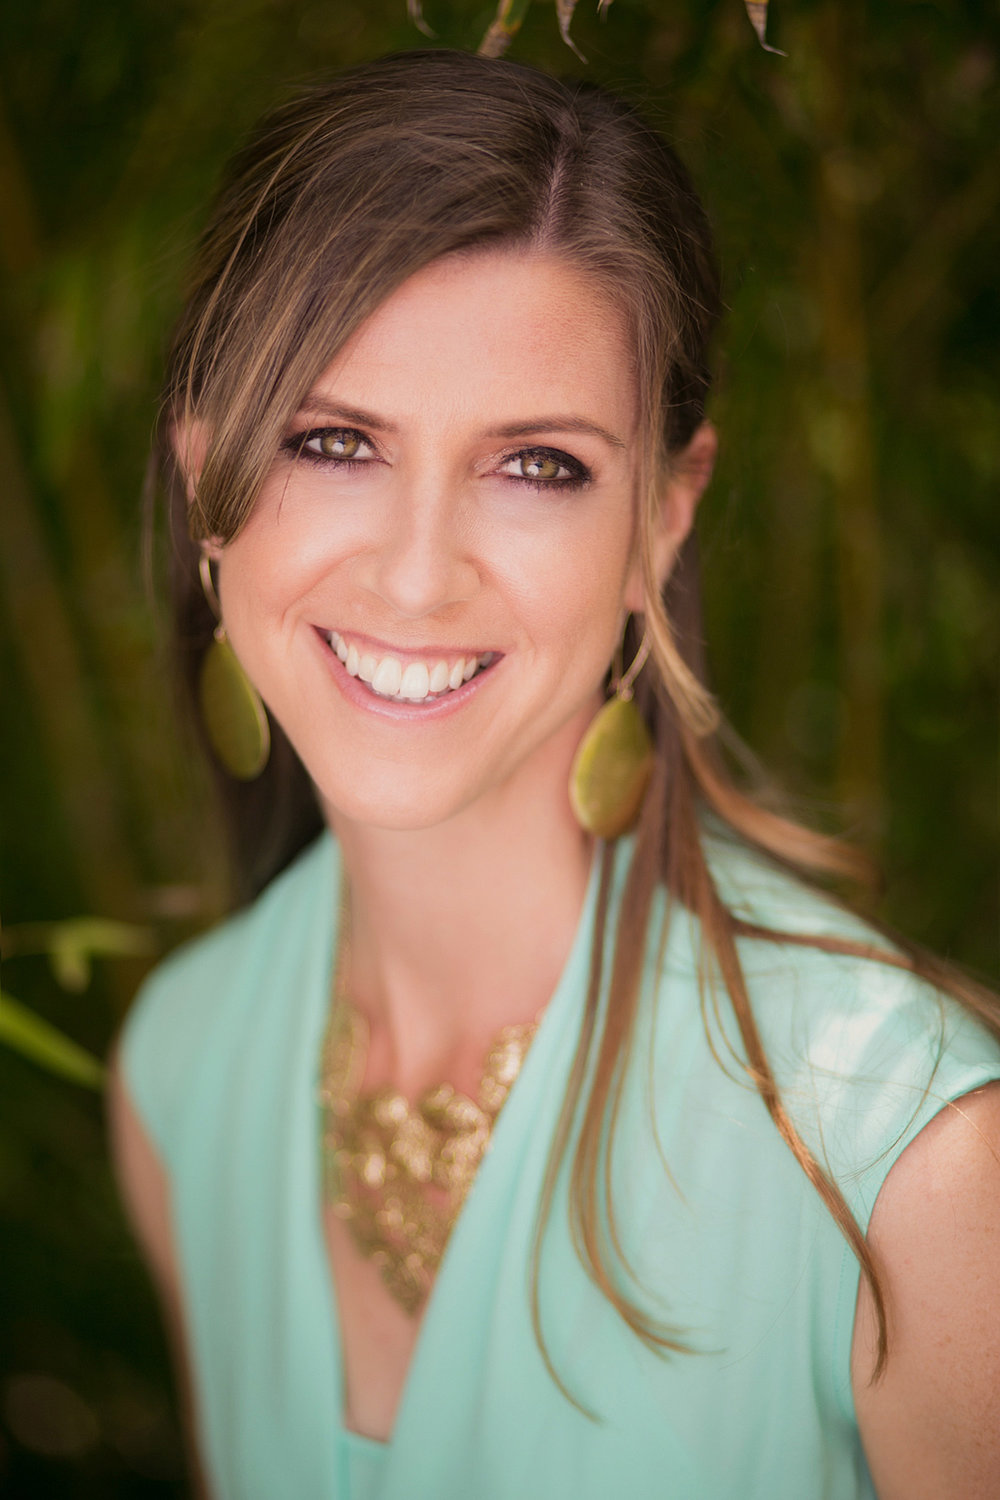 Hi! I'm Heidi Brockmyre, M.S., L.AC.. - (Masters of Science in Oriental Medicine and licensed acupuncturist), fertility coach, acupuncturist and speaker